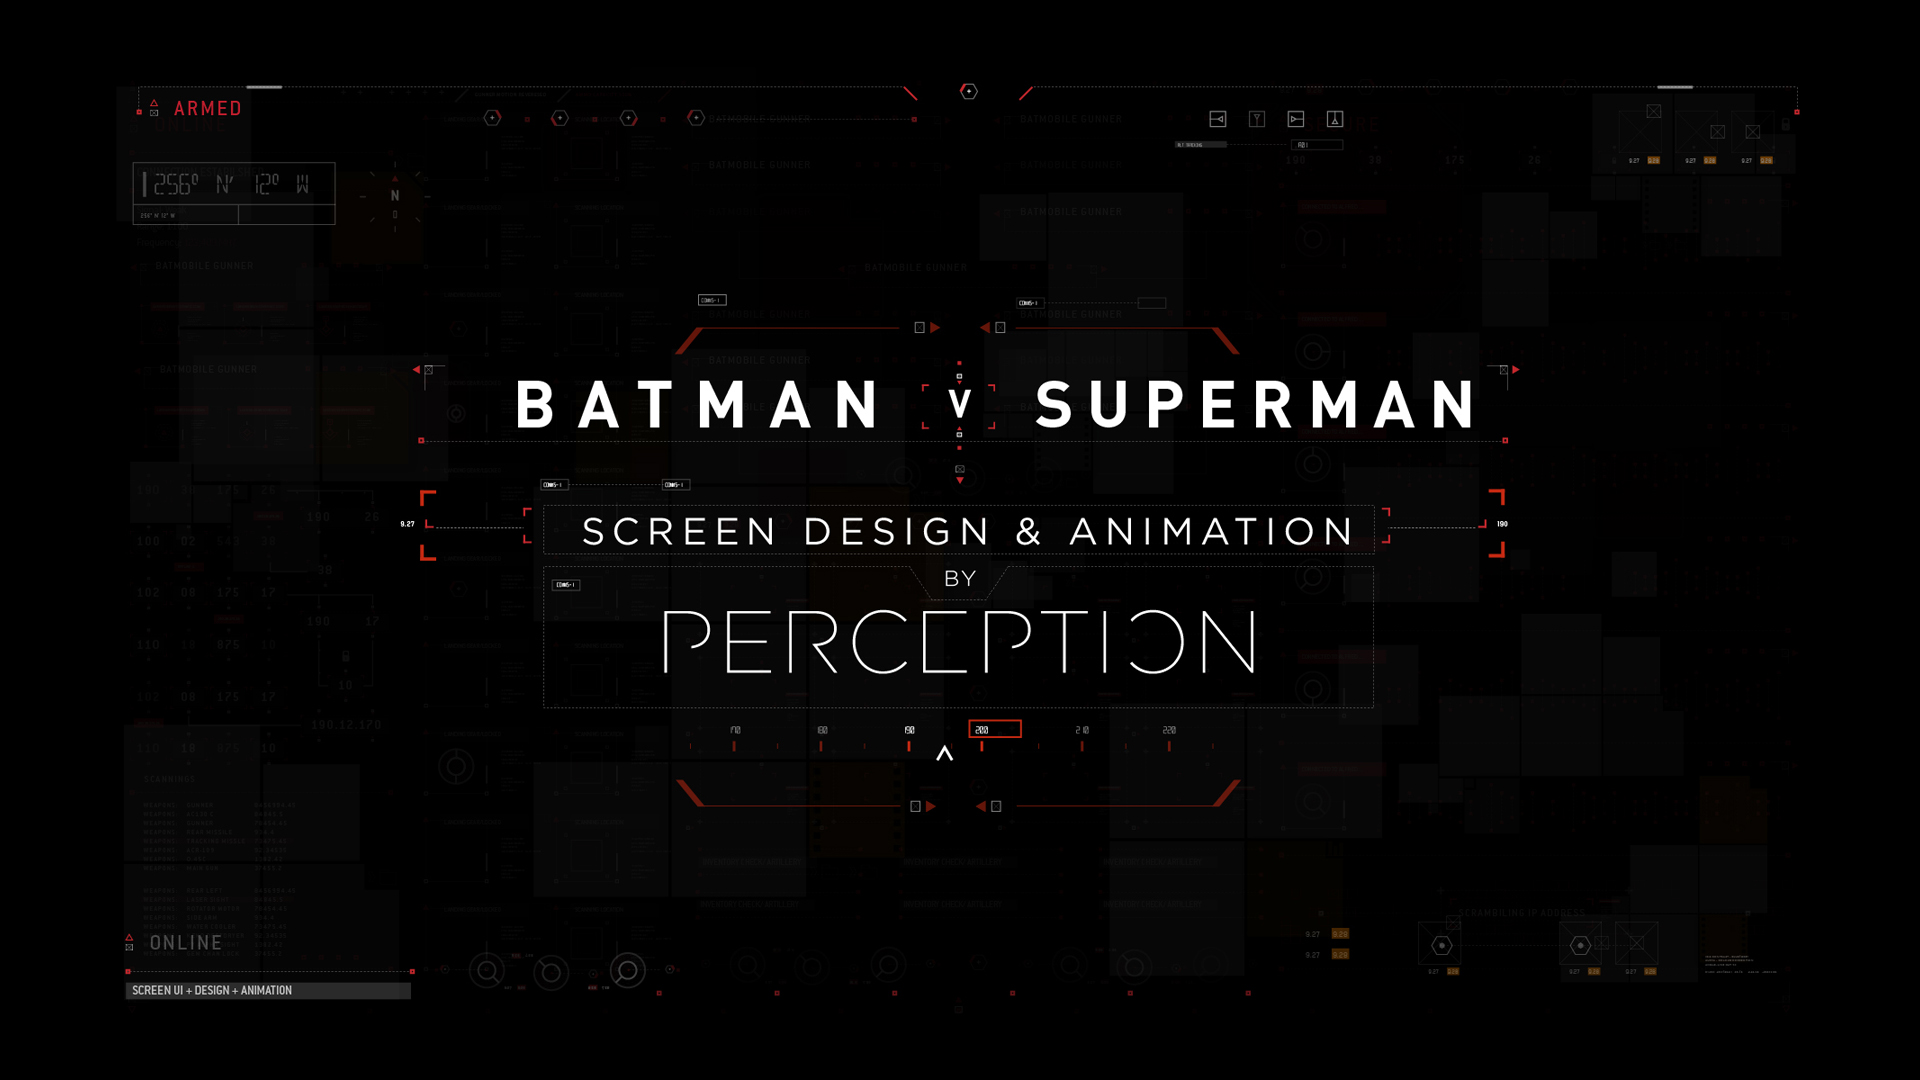 Batman_V_Superman_Title_card_V008-01 copy.jpg